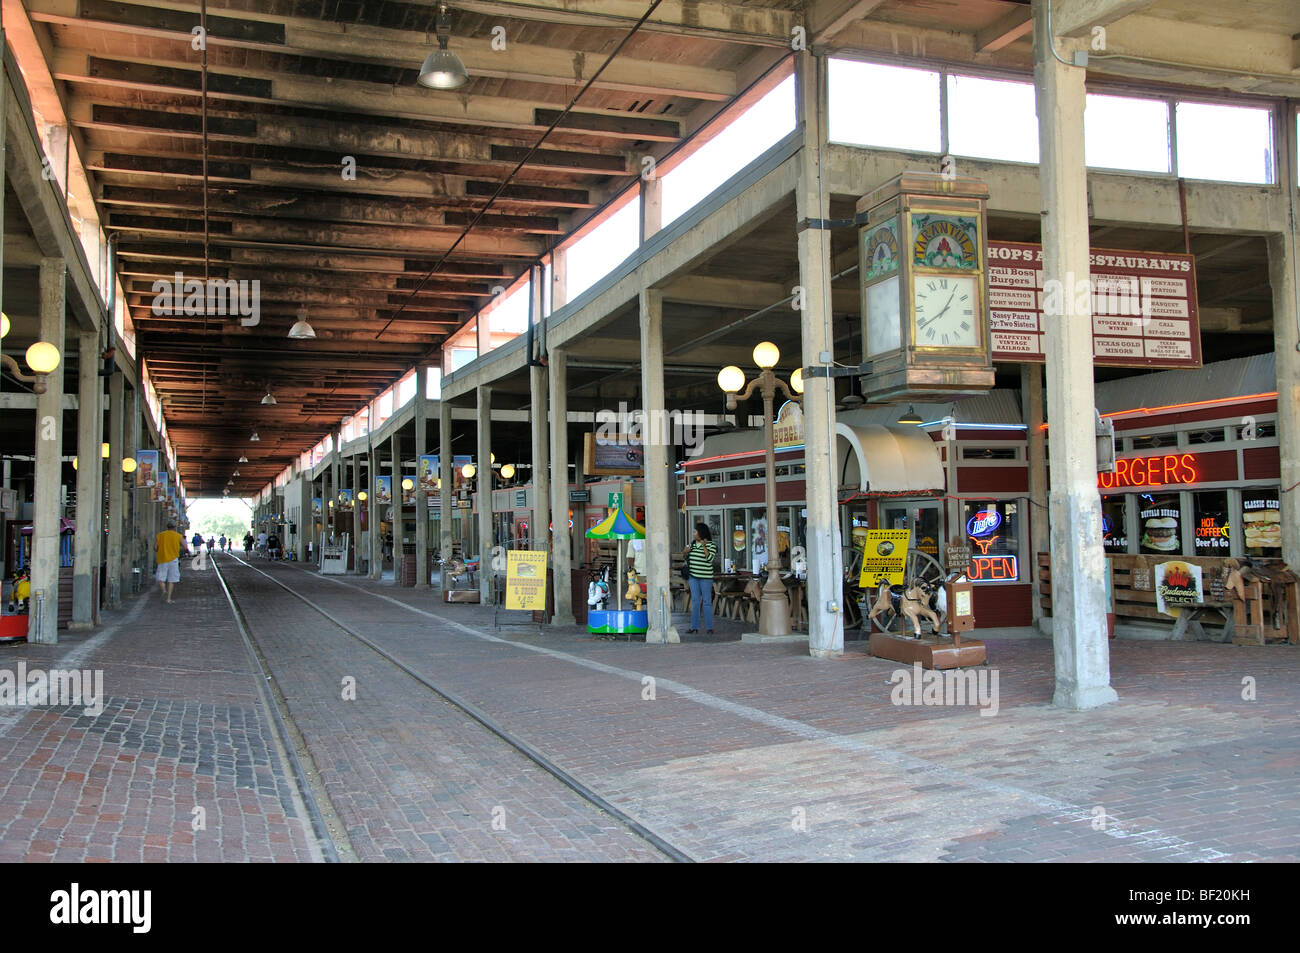 Stockyards Restaurants And Gift Shops Fort Worth Texas Stock Photo